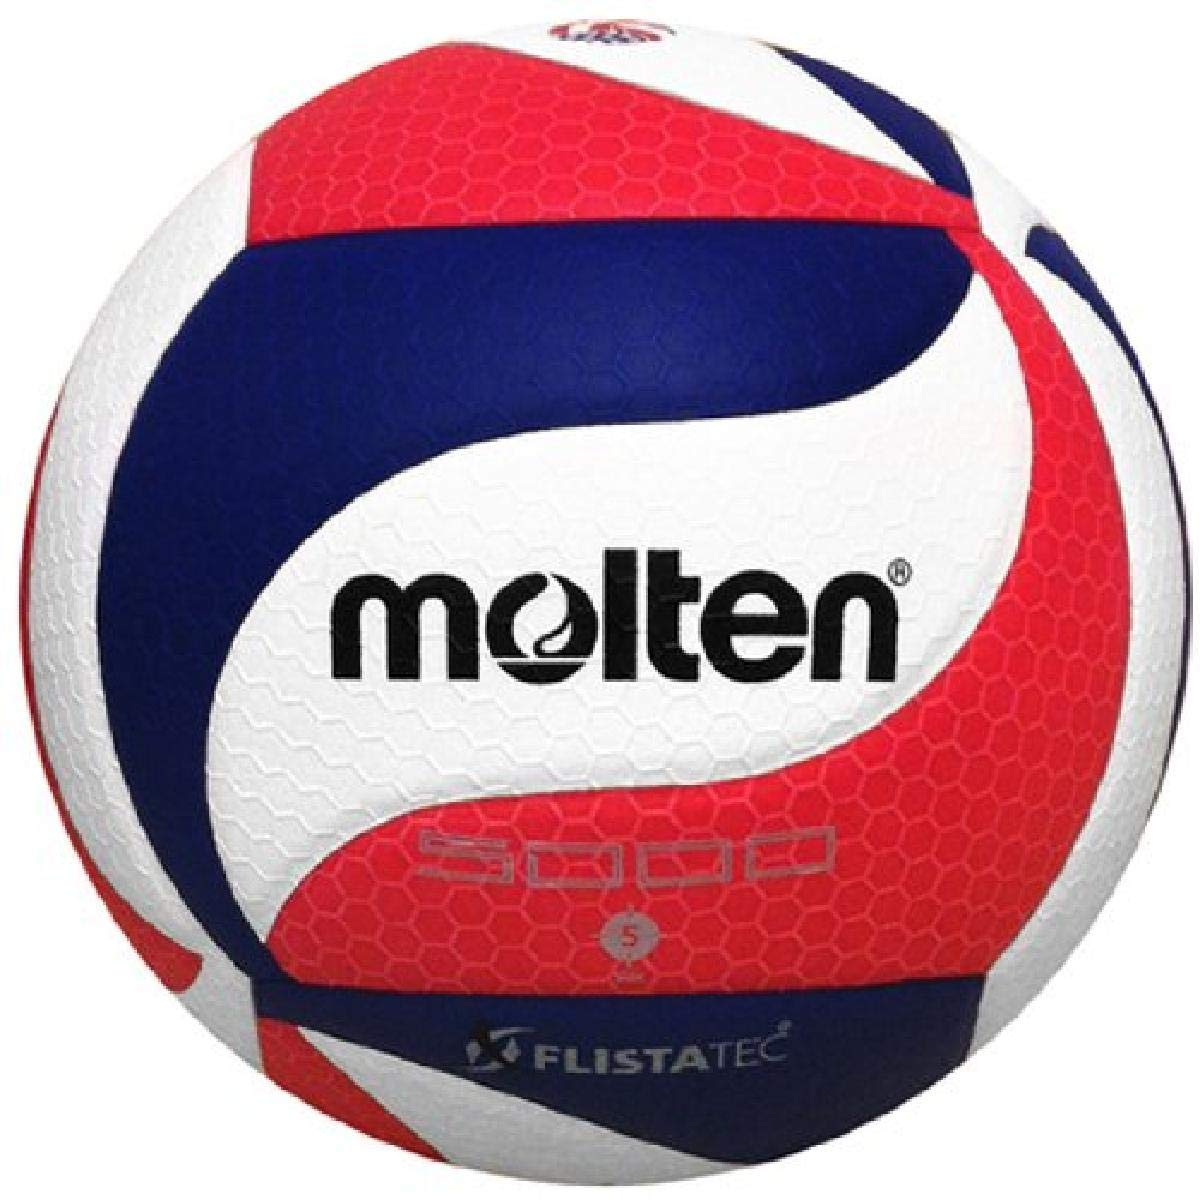 Buy Molten V5m5000 Men S Ncaa Flistatech Volleyball Red Green White Official Online At Low Prices In India Amazon In